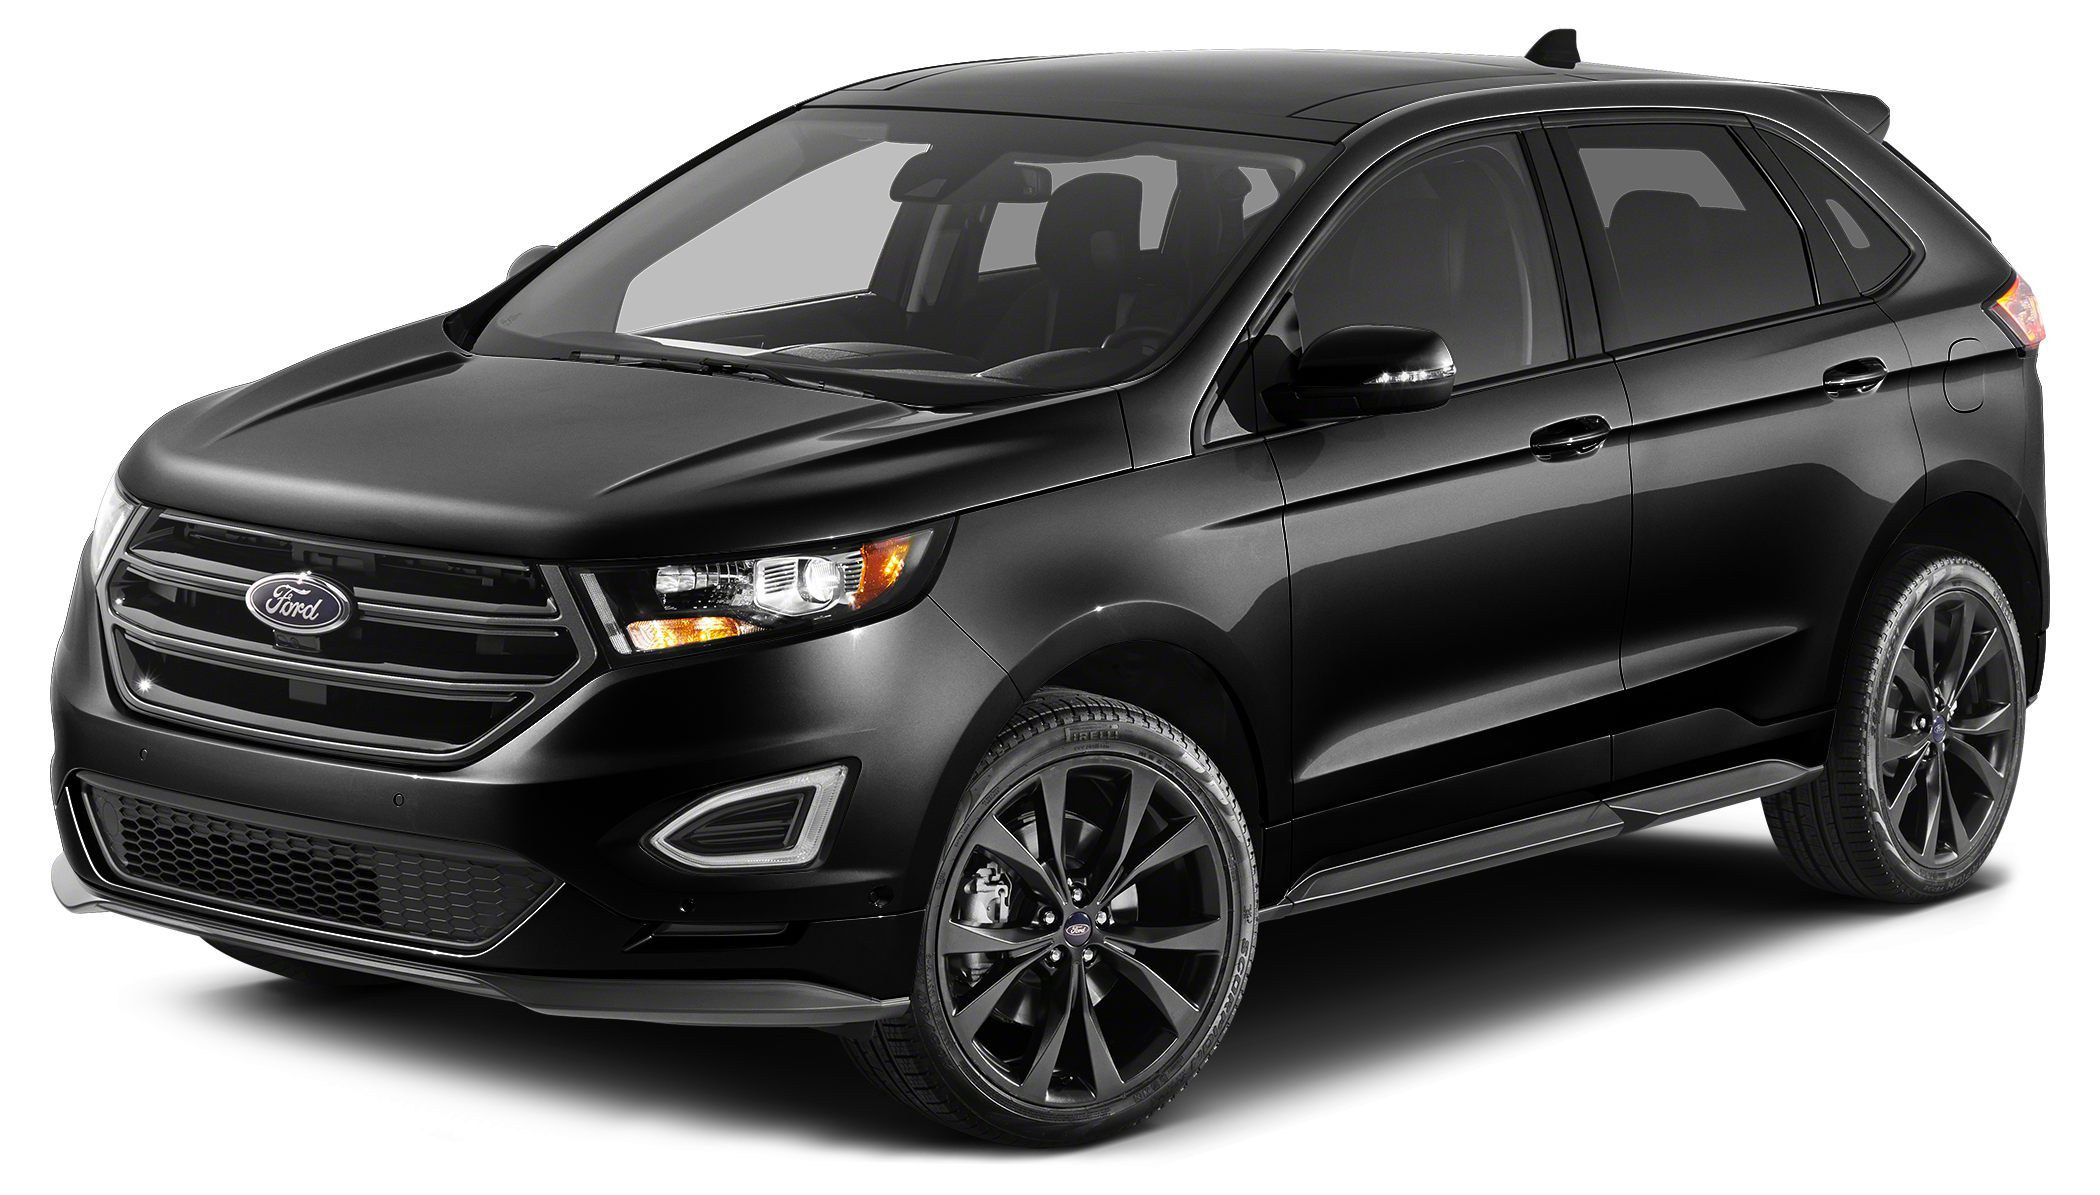 96bd0d483e9421b75296545ec60691ae Cool Review About 2016 Edge Titanium with Awesome Pictures Cars Review